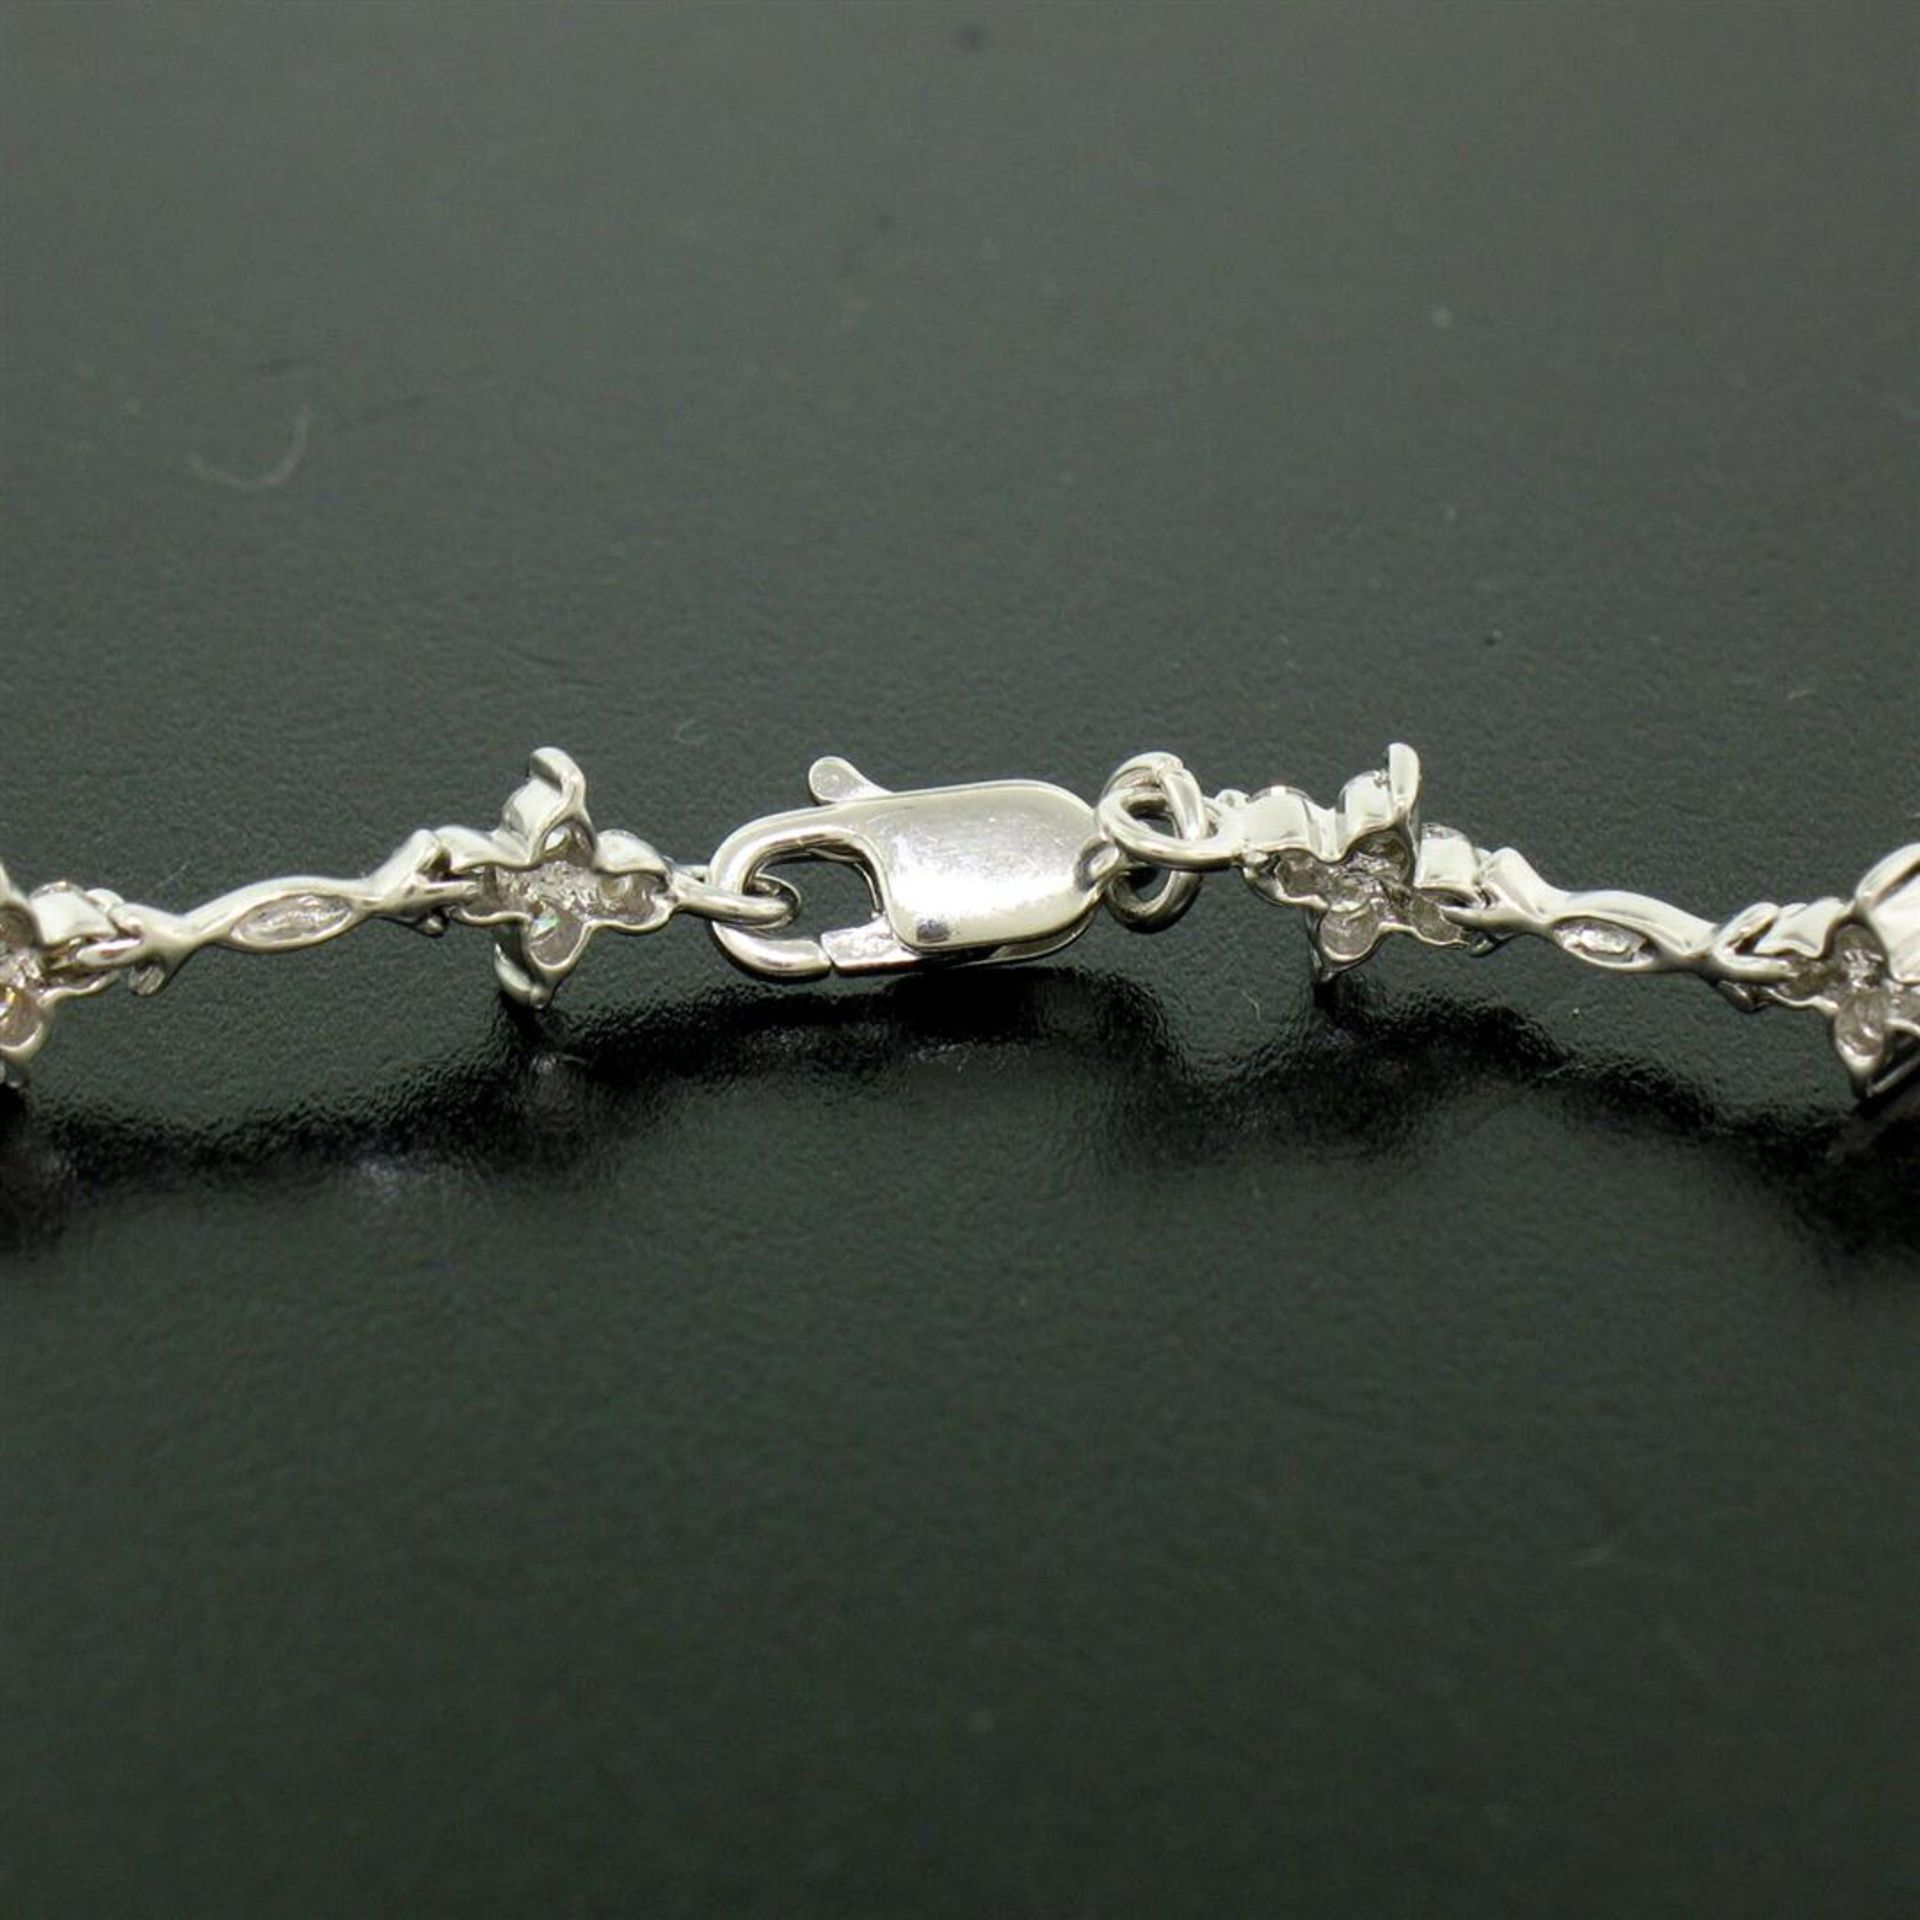 18K White Gold 1.65ctw Diamond Flower Cluster Twisted Wire Link Tennis Bracelet - Image 6 of 6